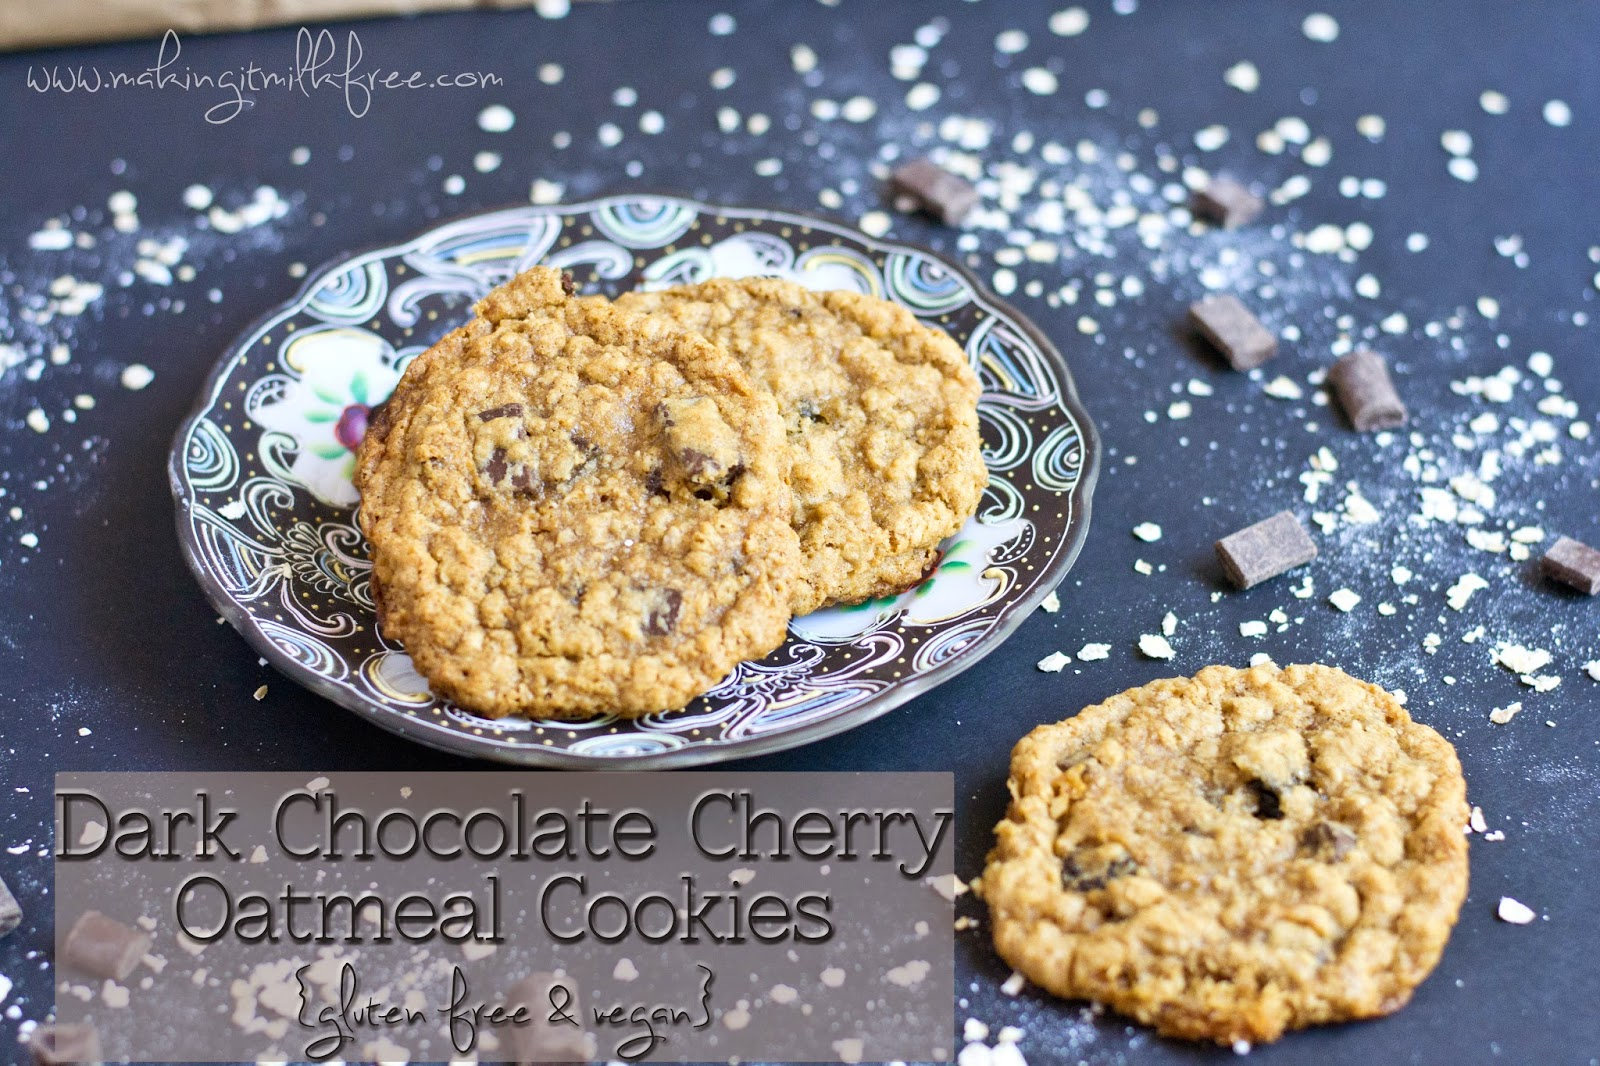 #glutenfree #vegan #darkchocolate #tartcherry #oatmeal #cookies